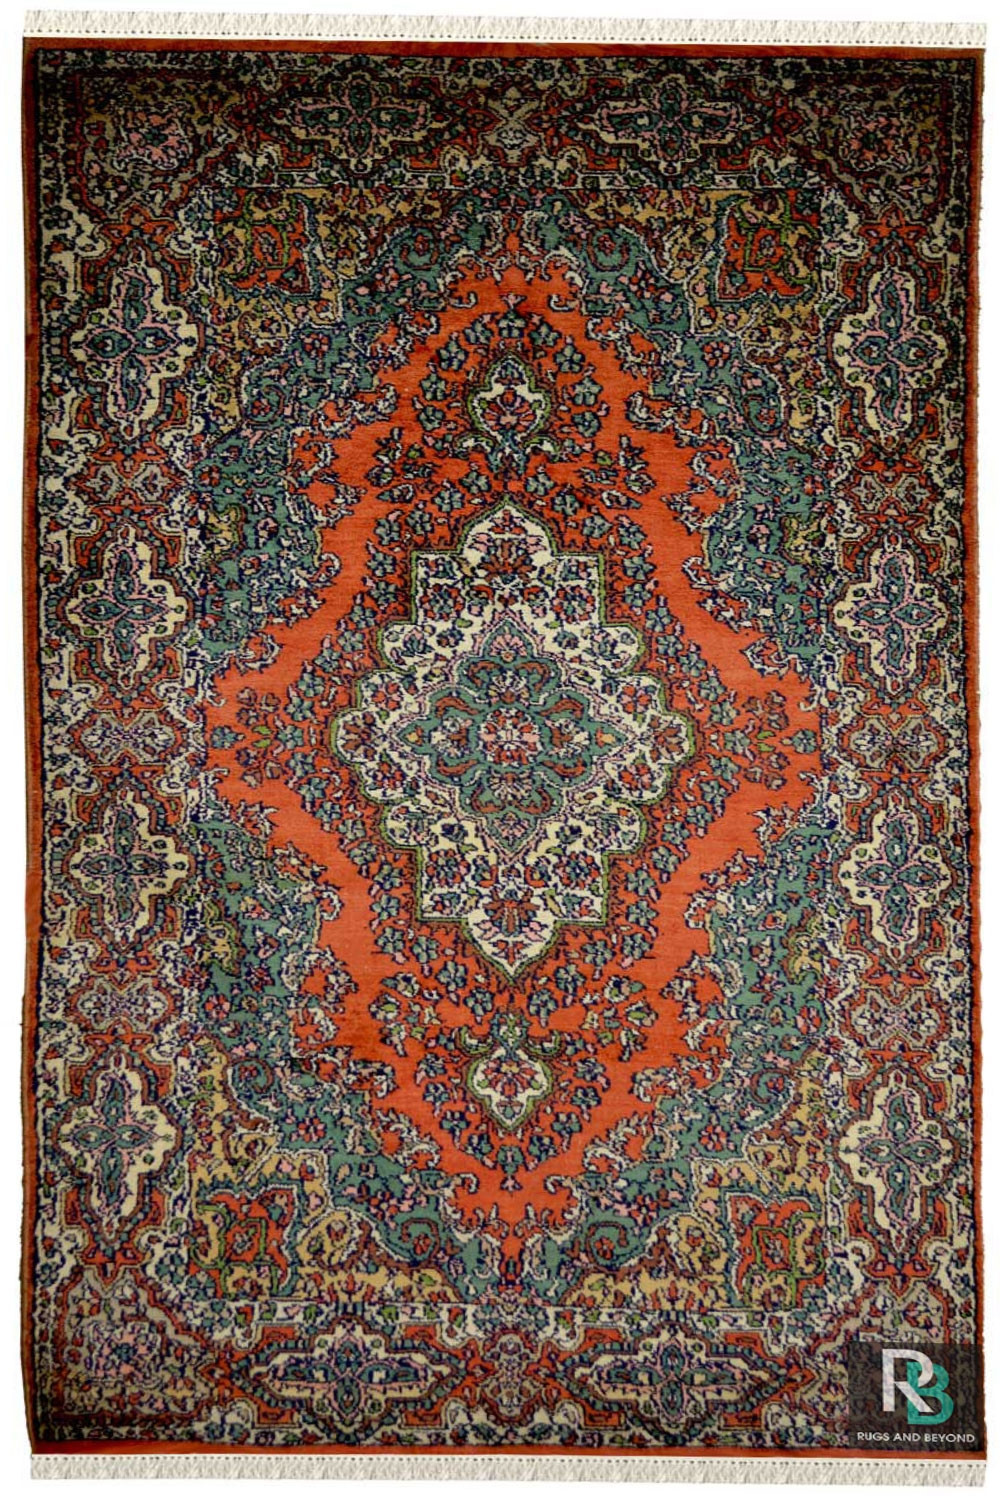 Nain Gulaab Carpet Persian Silk Rugs Online With Best Price